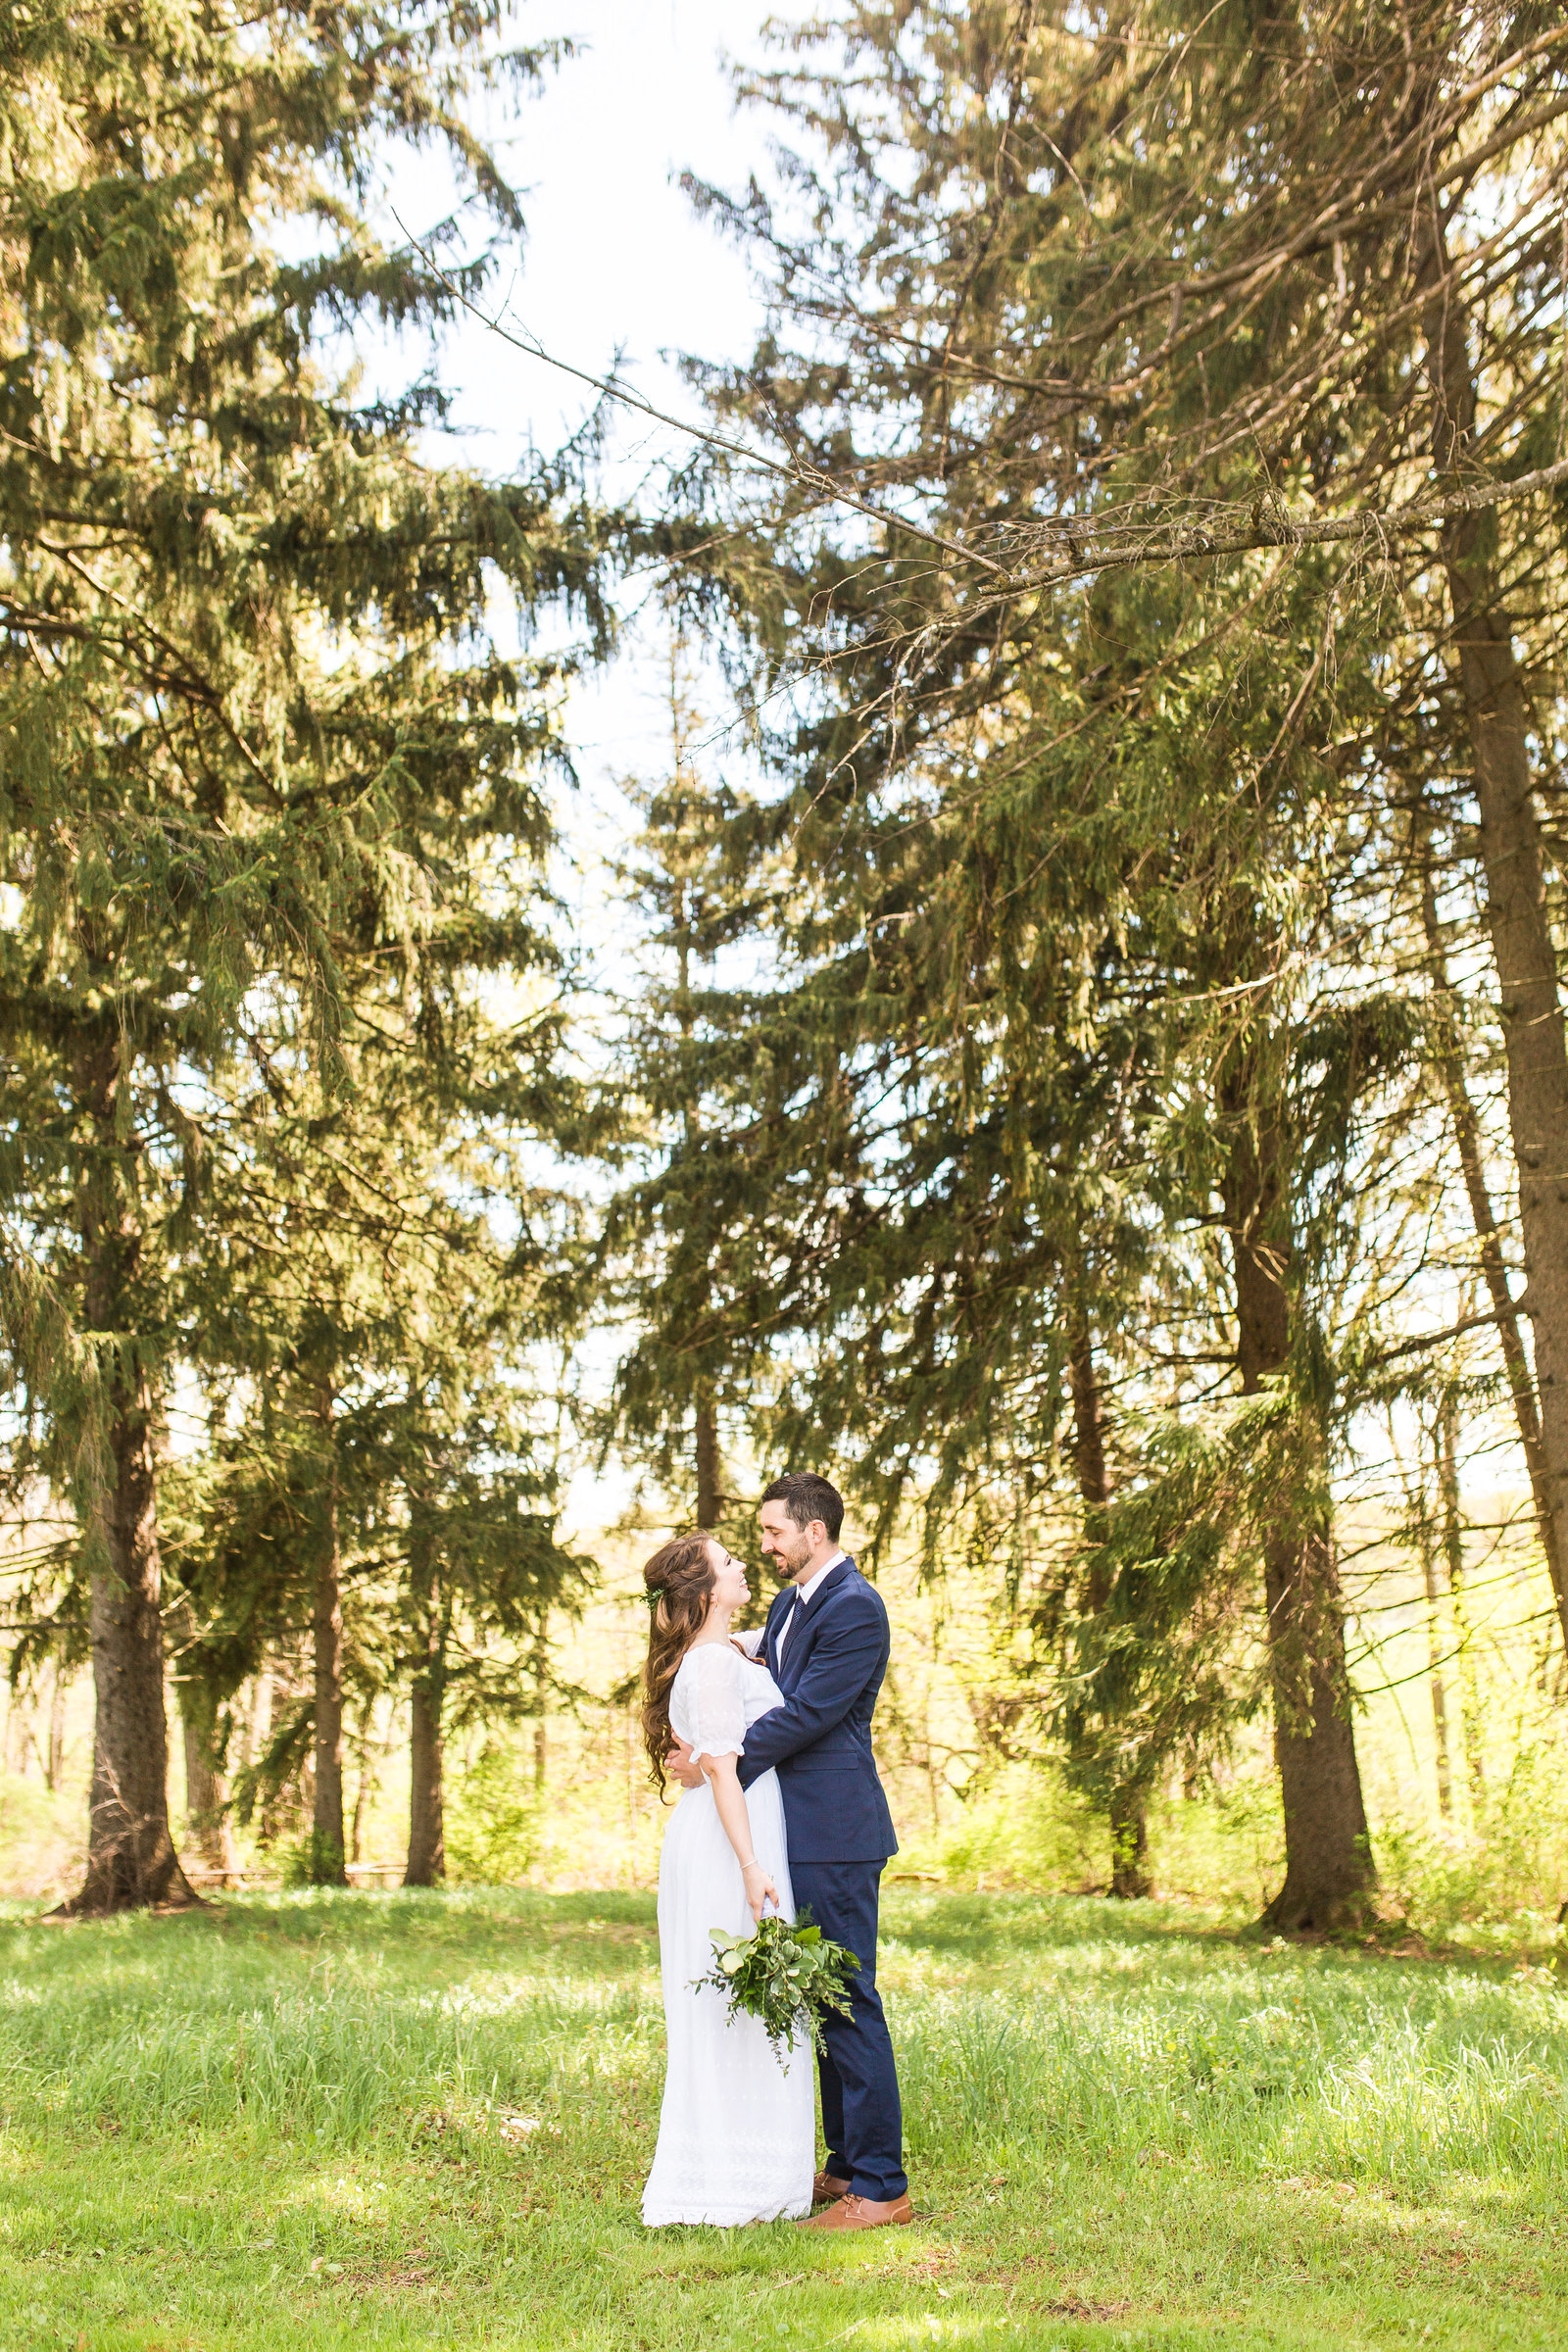 Bride and Groom portraits in the forest| Megan Snitker Photography | Iowa City Wedding Photographers